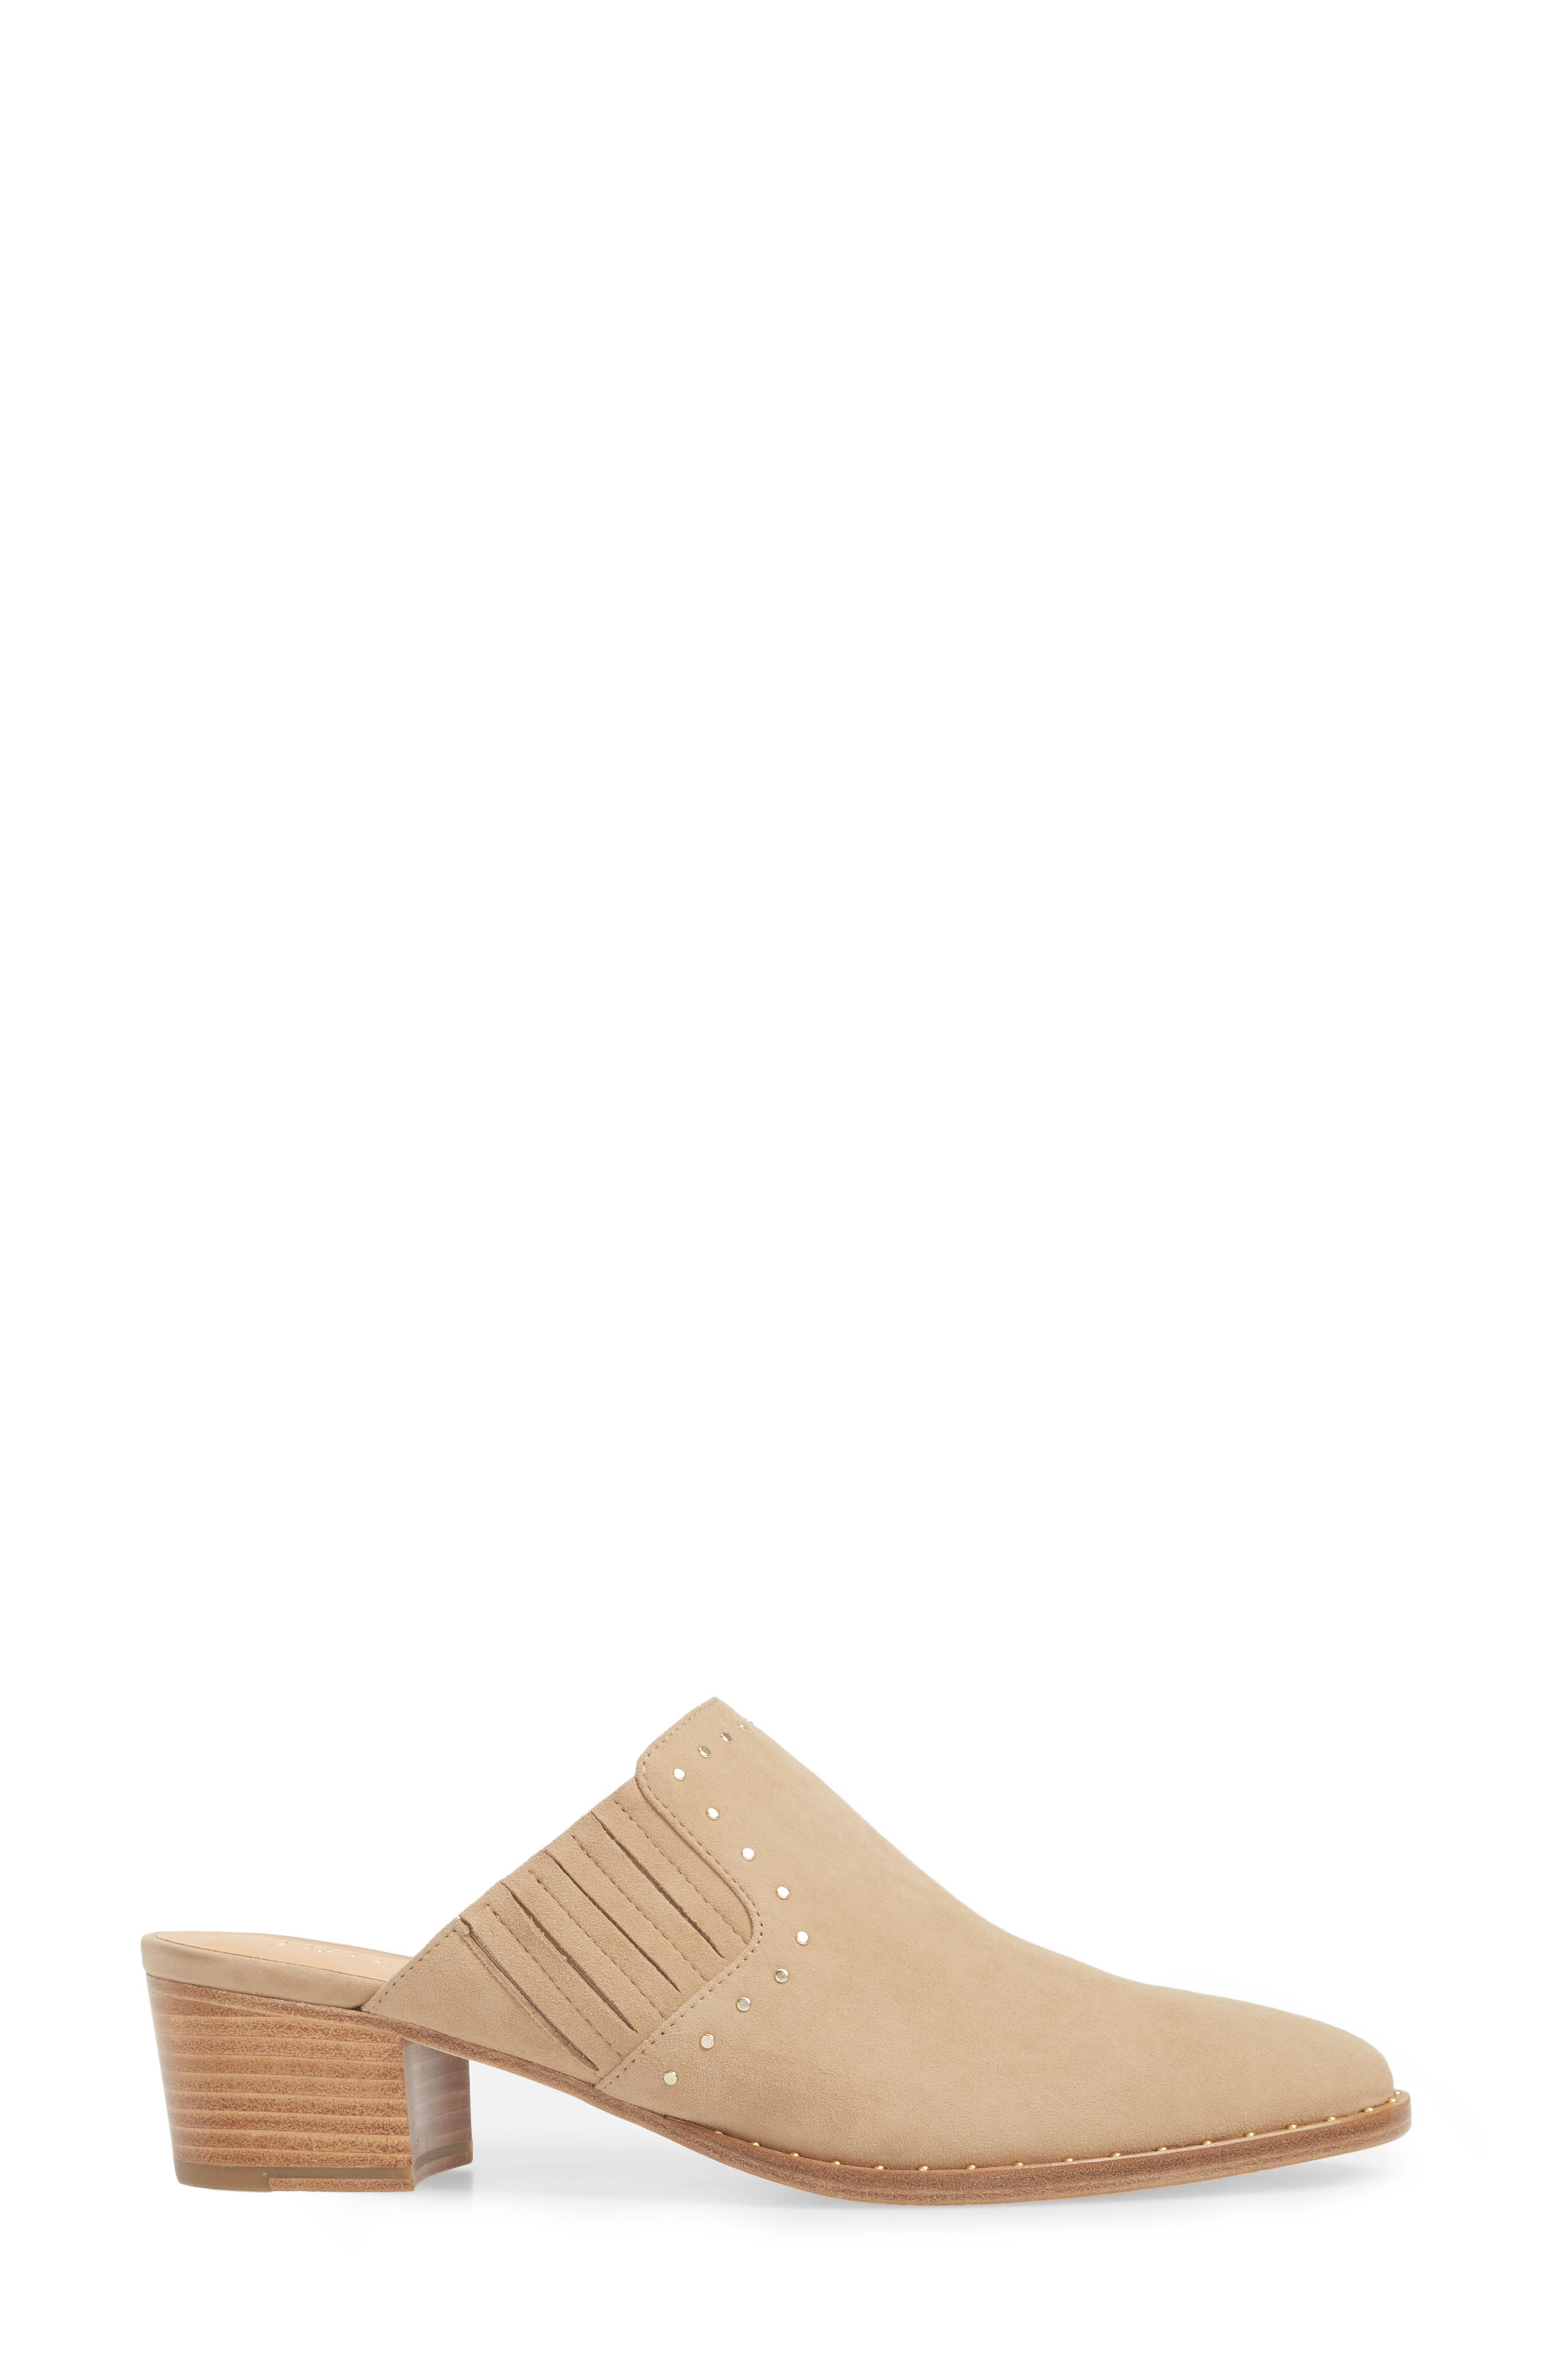 Fayla Studded Mule,                             Alternate thumbnail 3, color,                             SAND